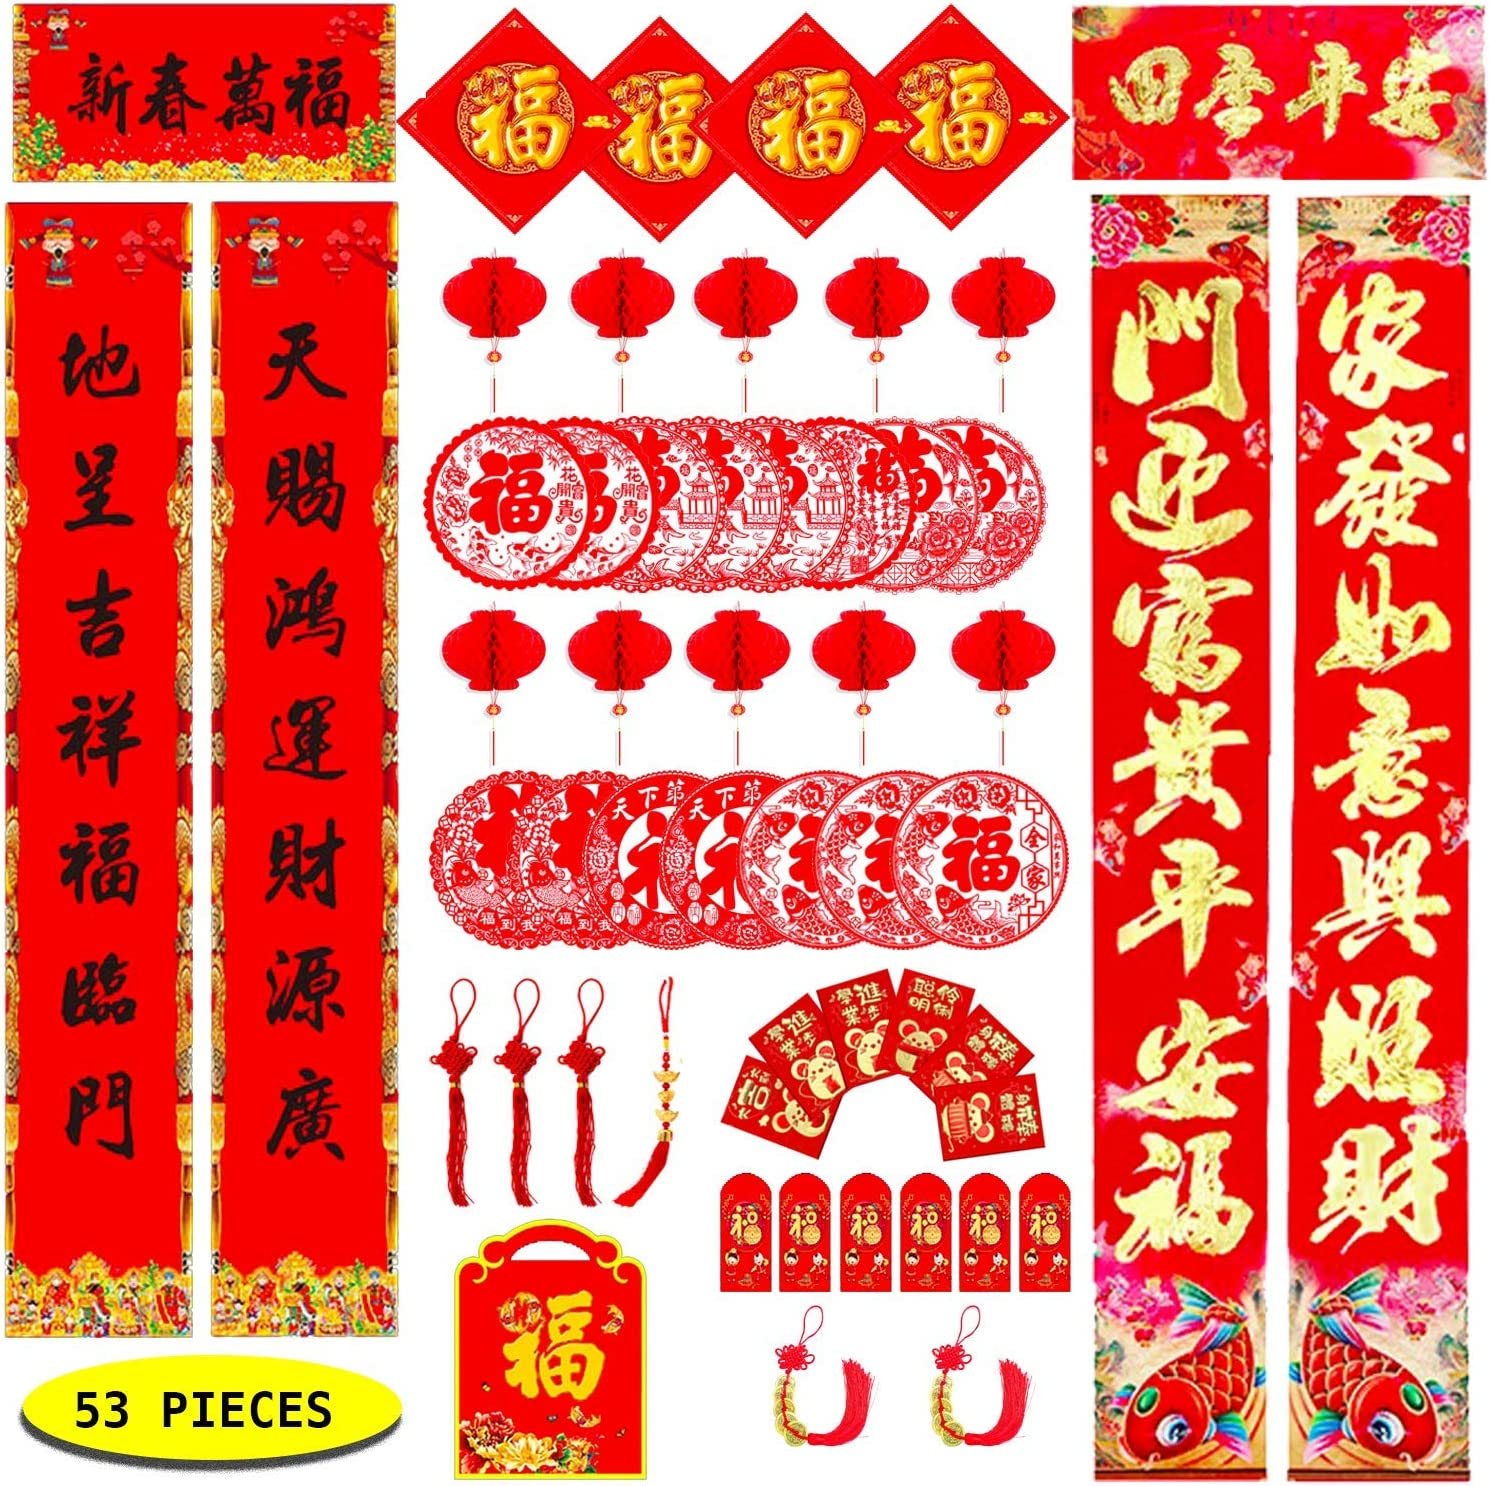 Chinese New Year Decoration Set(53pcs) with Spring Festival Scrolls Premium Chinese Couplets Wall Stickers Poem, Red Lantern, Wallpaper, Red Envelope, Chunlian,Hanging Ornament, Decoration Collection